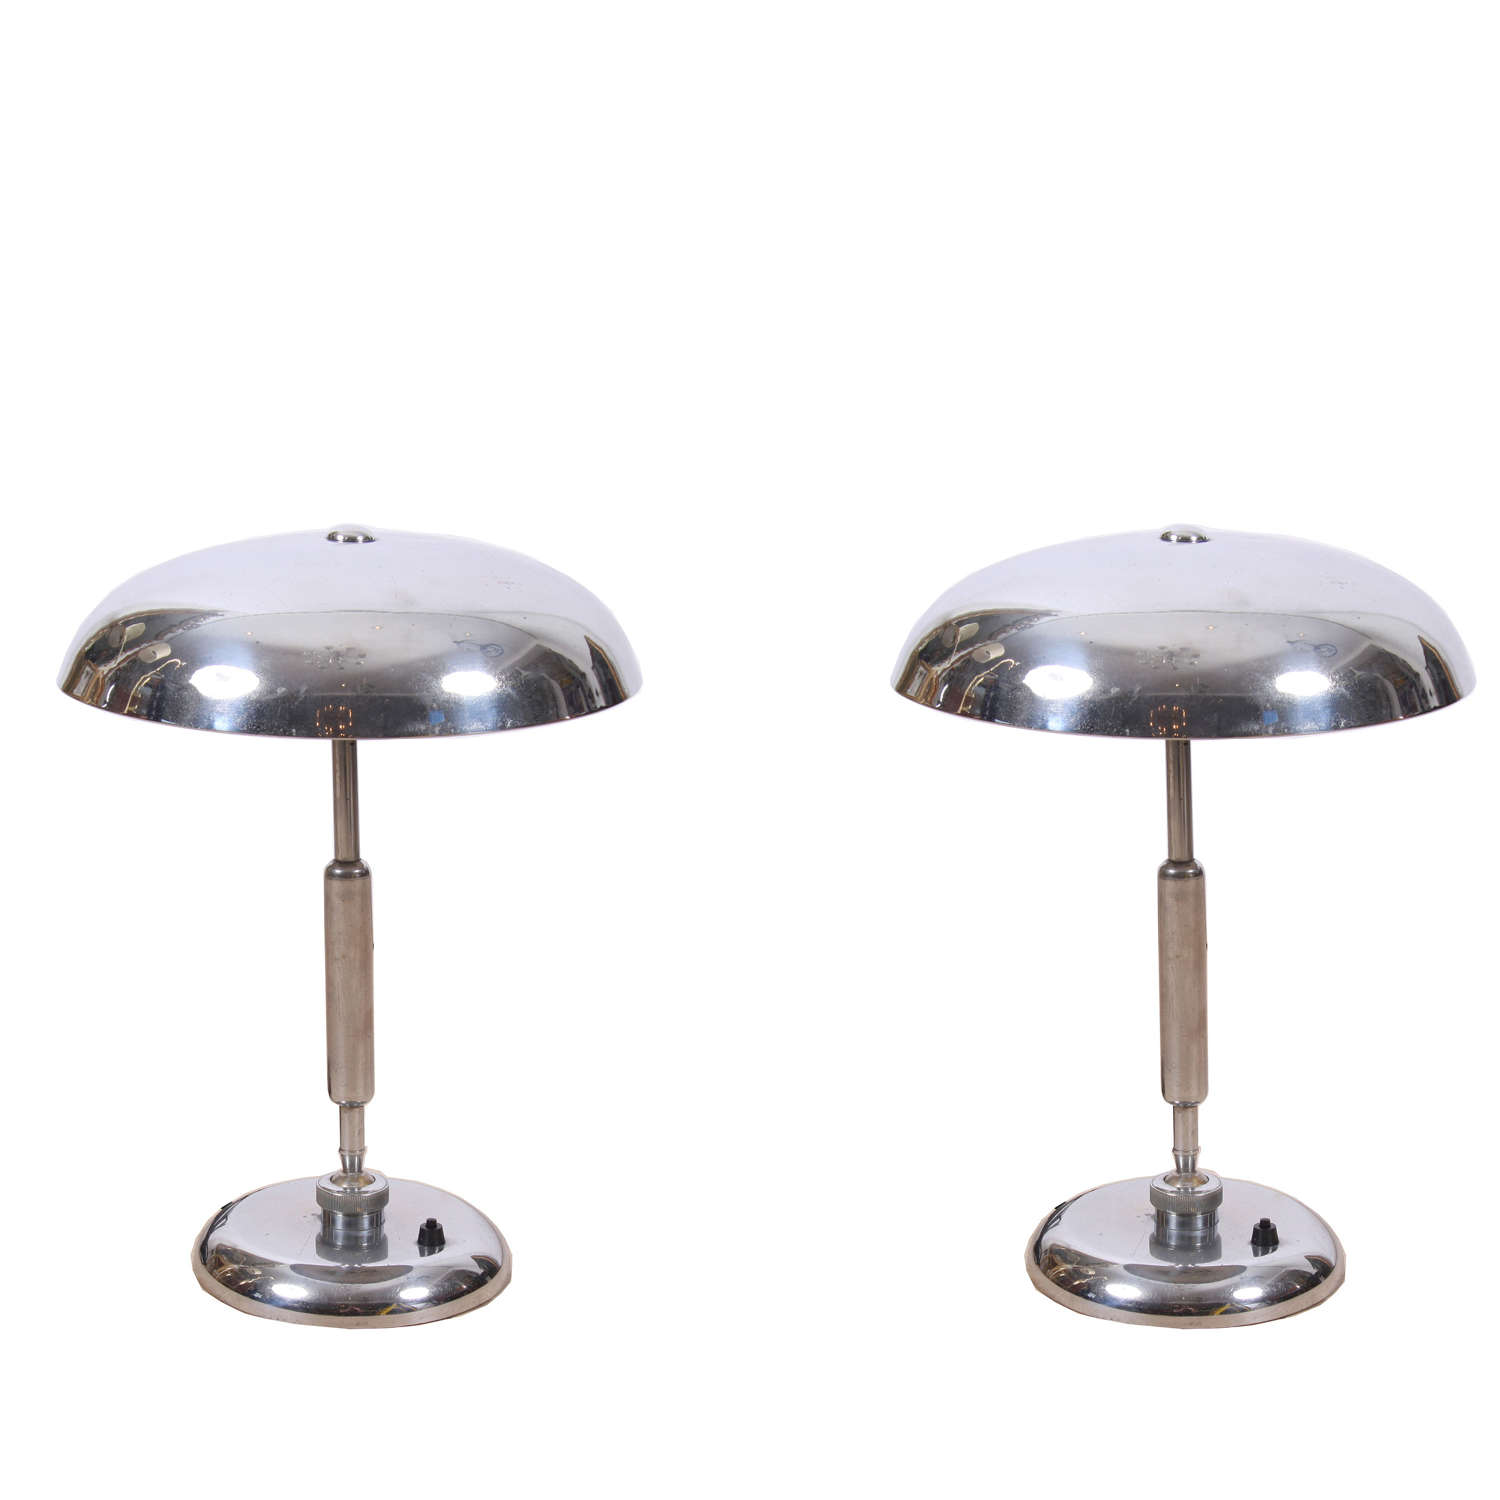 Pair of Nickel Plated Italian 1960s Table Lamps